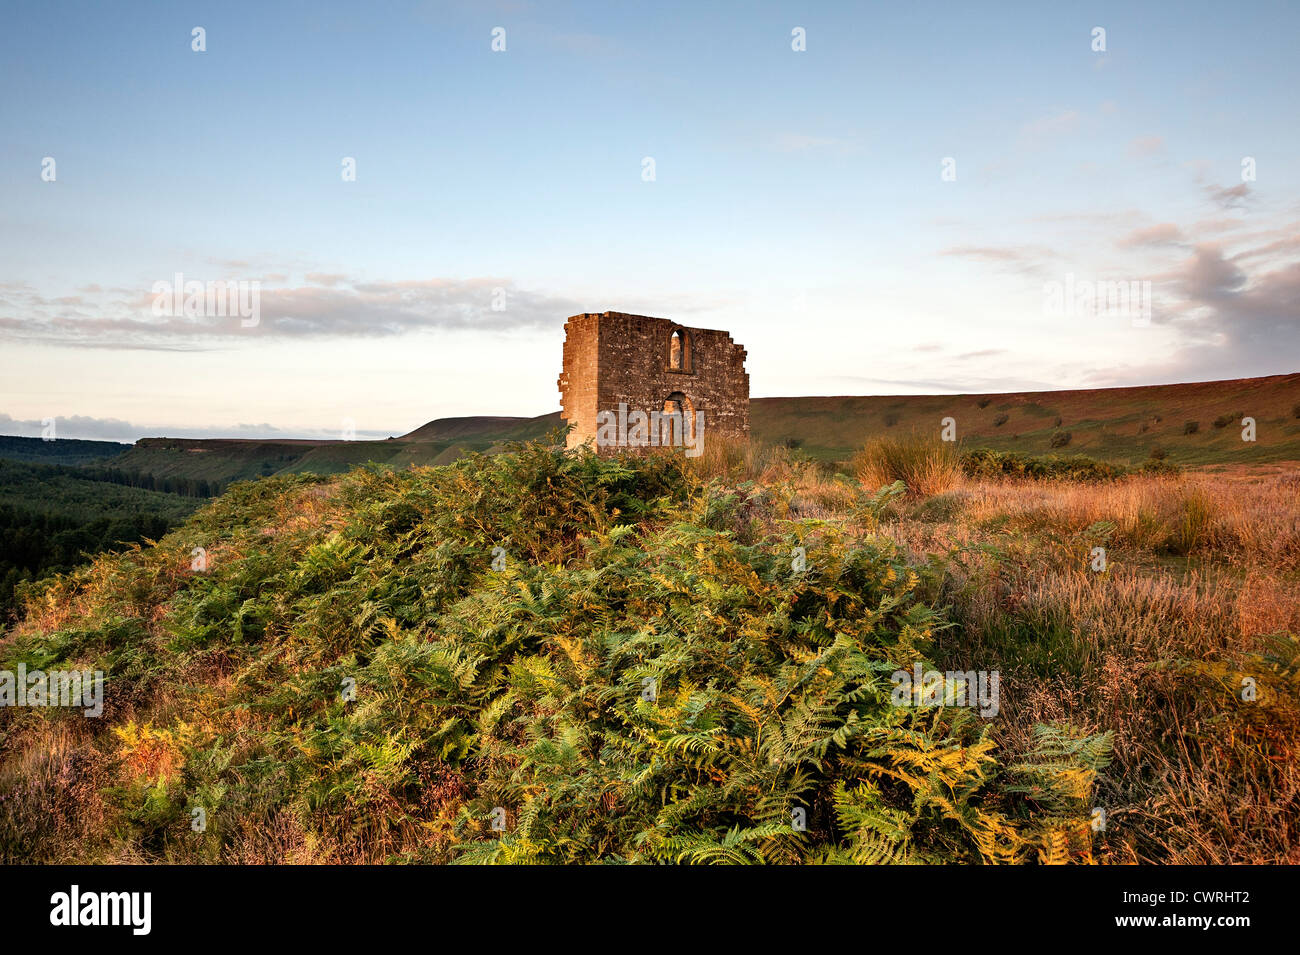 The ruin of Skelton Tower overlooking Newtondale in the North Yorkshire Moors National Park - Stock Image